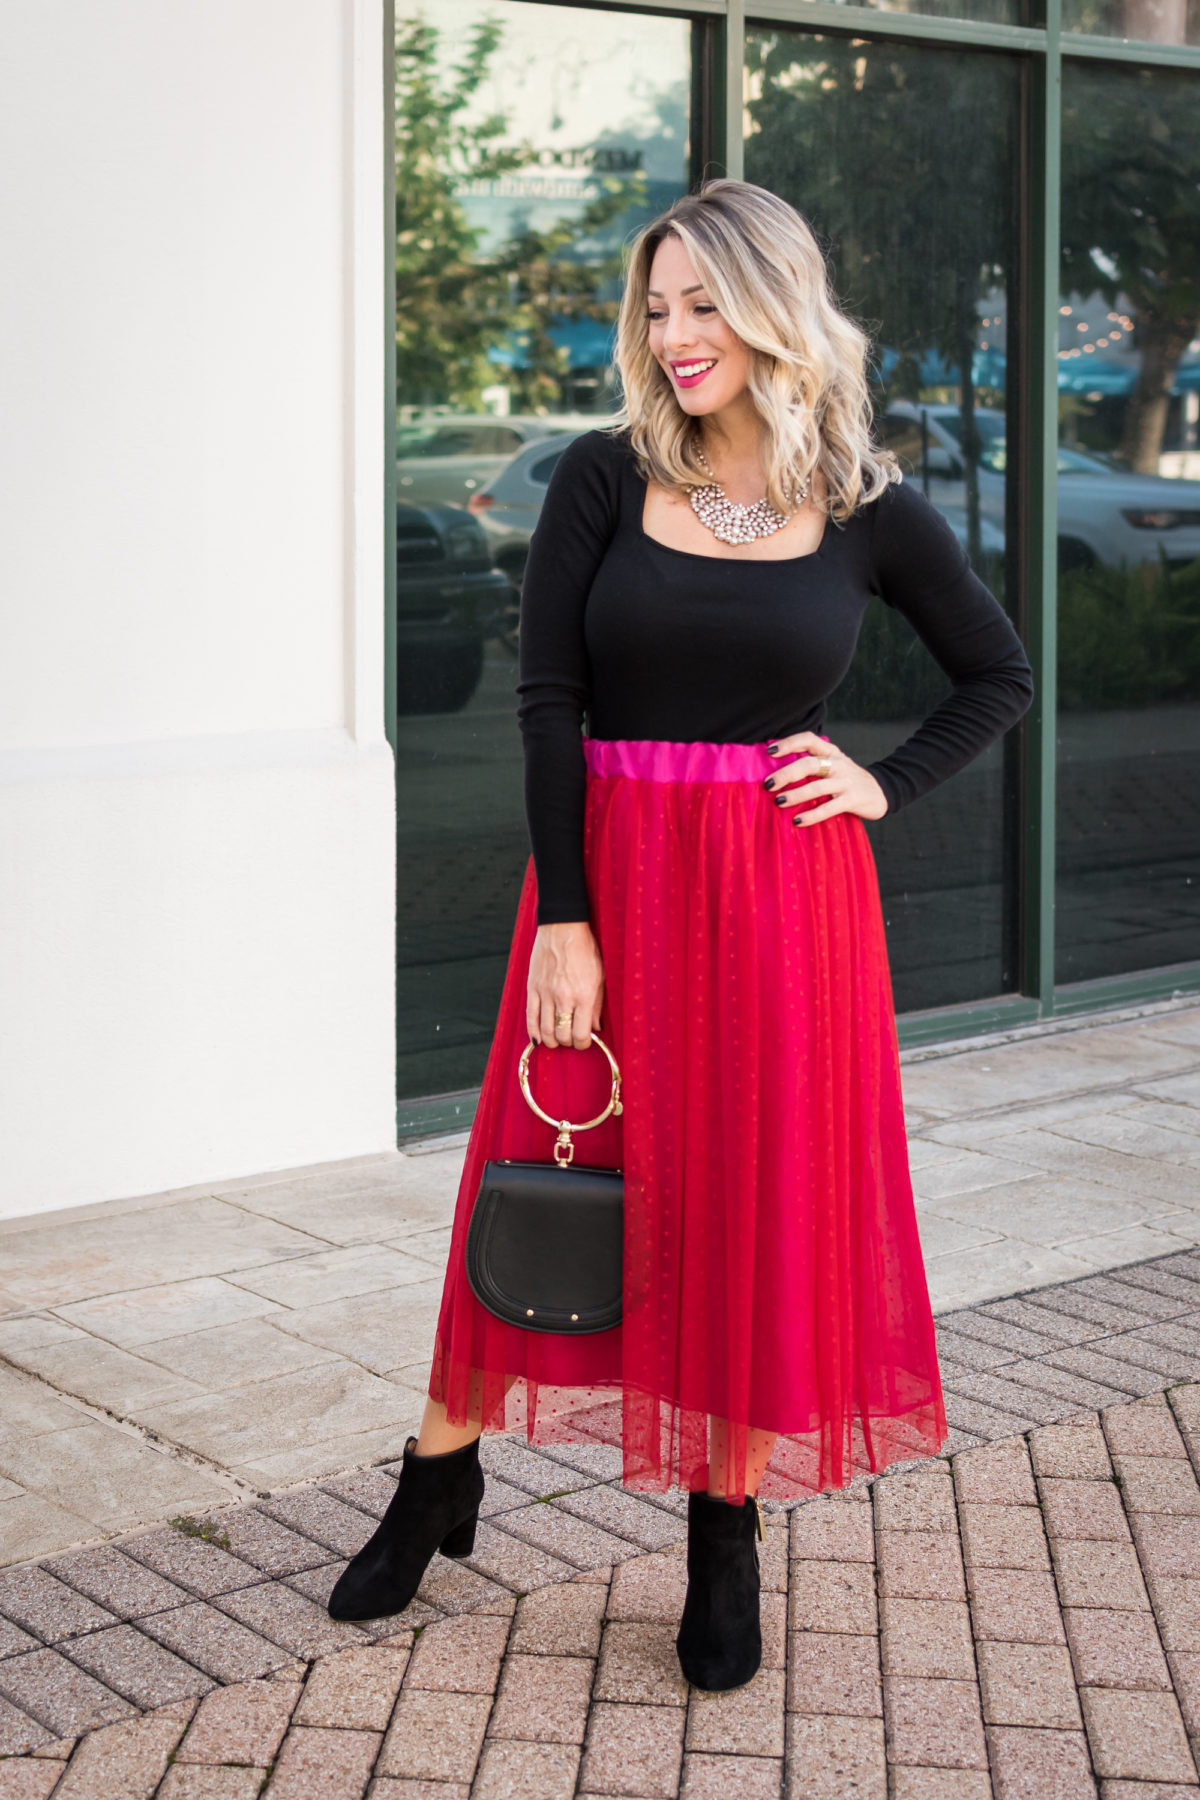 Gibson Fashion, Bodysuit Long Sleeve, Tulle Skirt, Black Booties